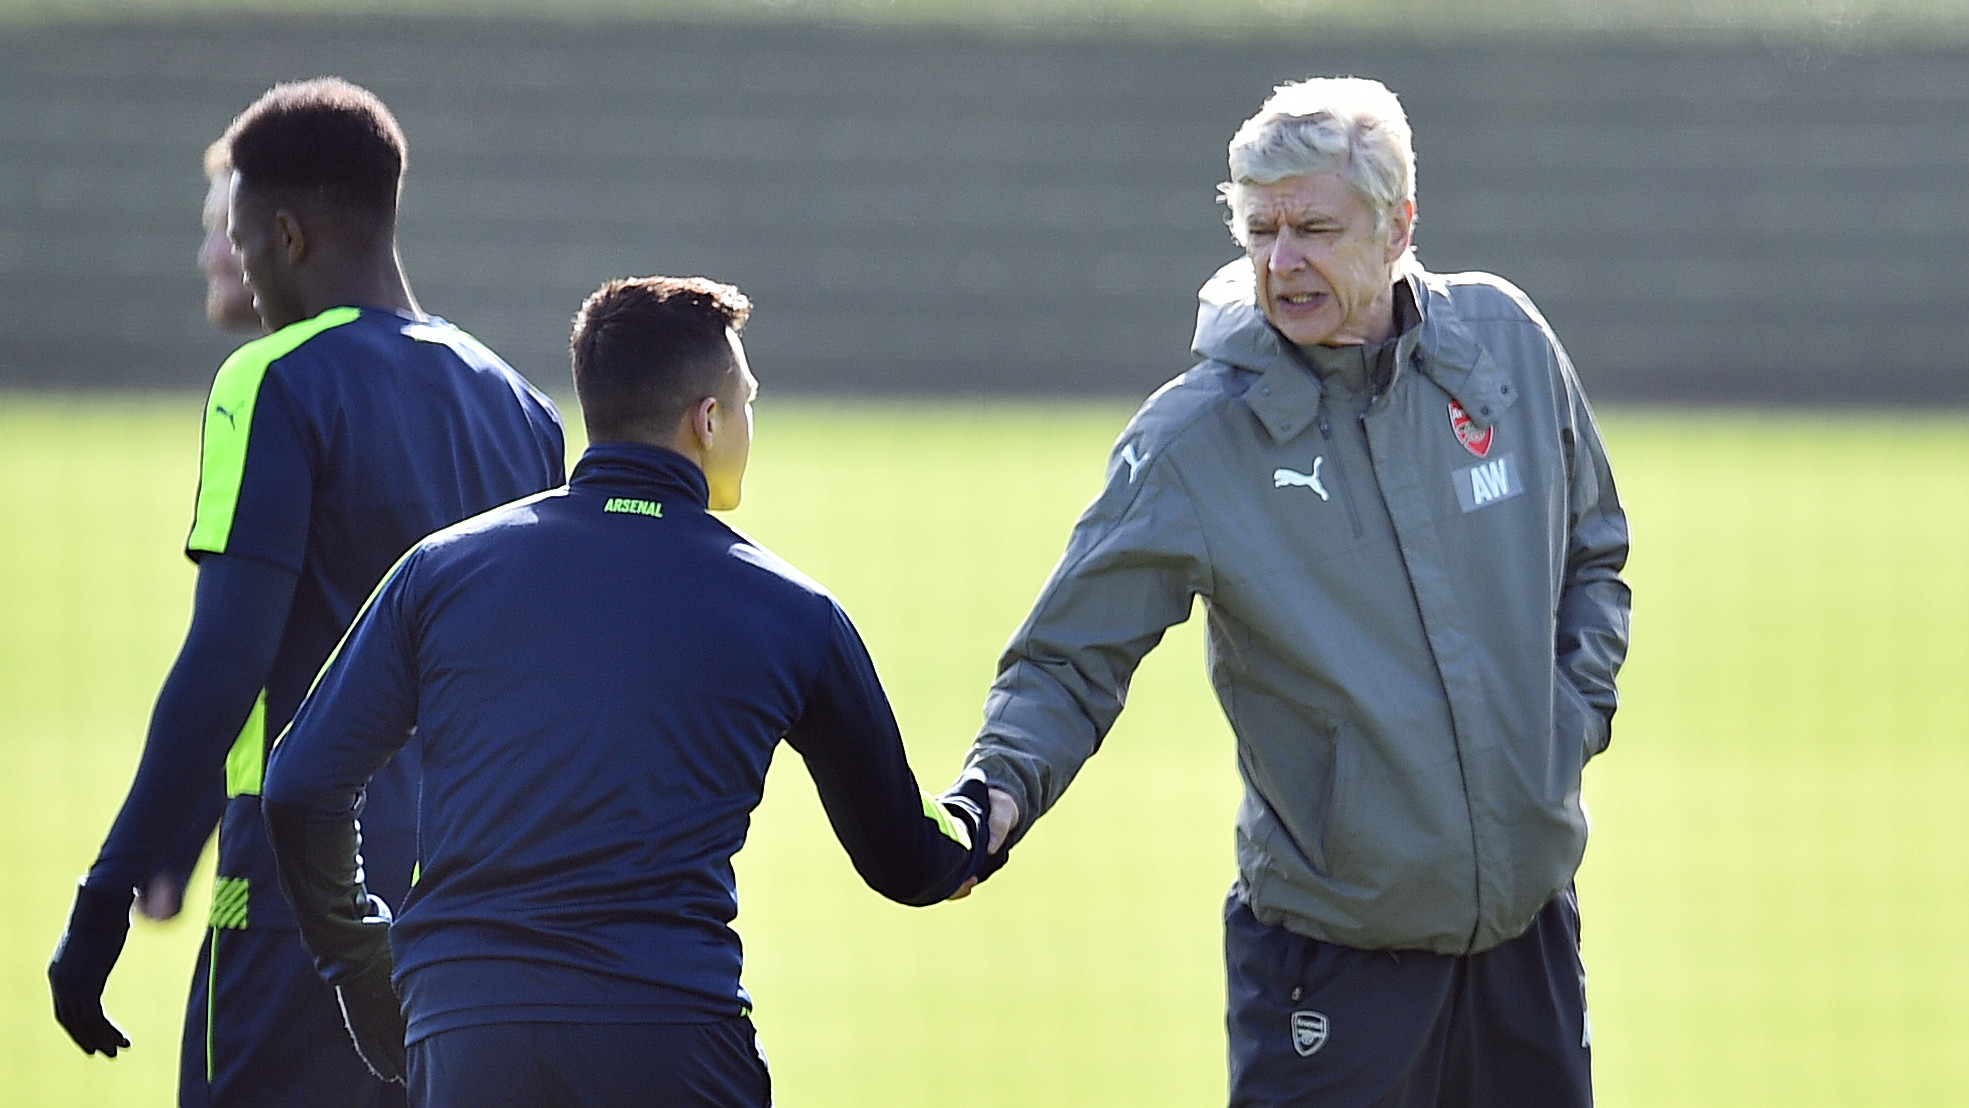 Alexis Sanchez Arsene Wenger Arsenal training